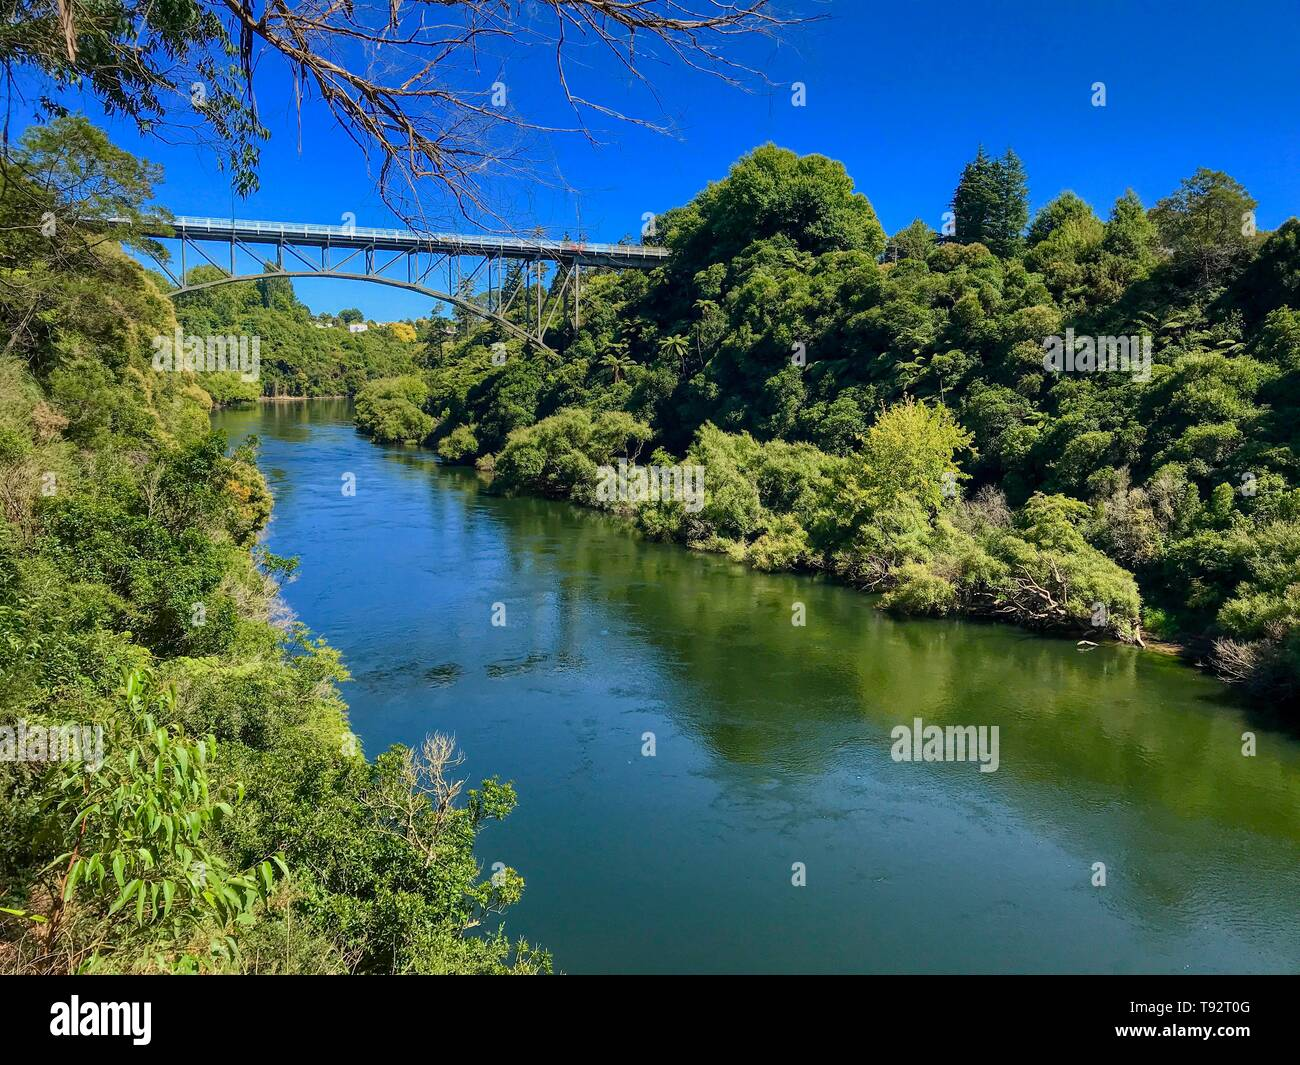 Victoria Bridge, a hinged braced arch bridge in Cambridge, New Zealand - Stock Image